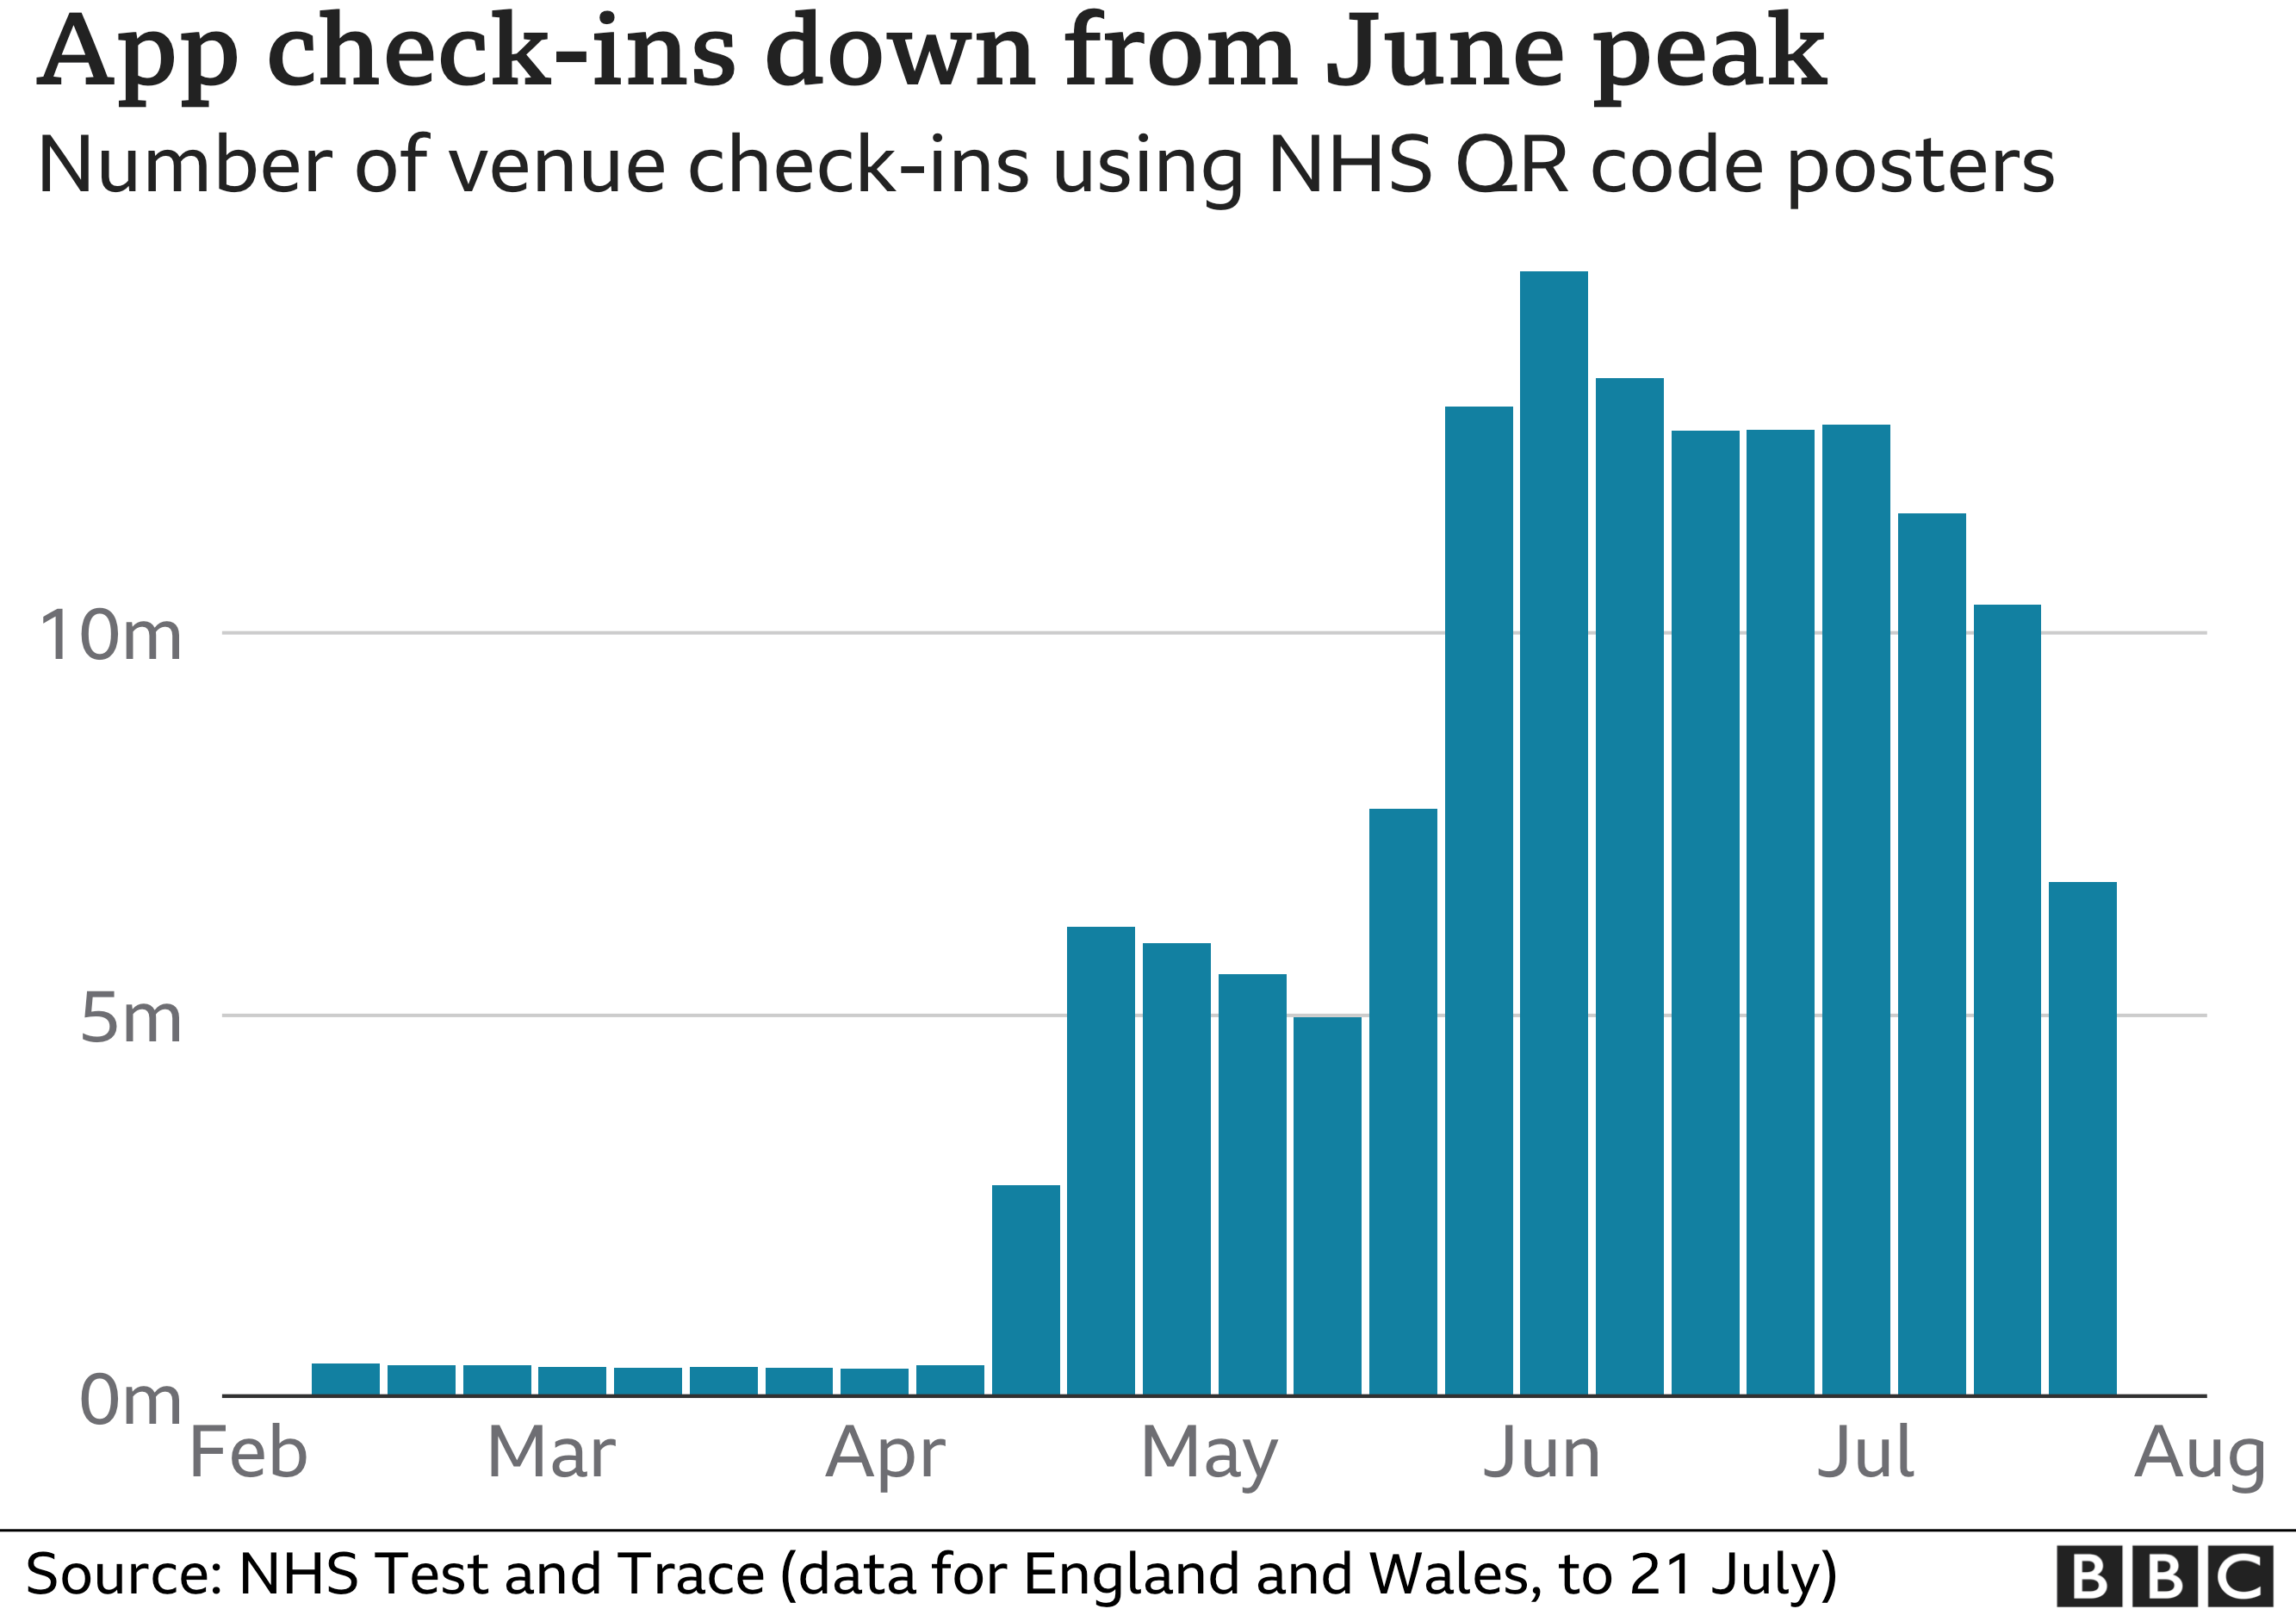 Chart showing a falling number of venue checks-ins using NHS QR code posters